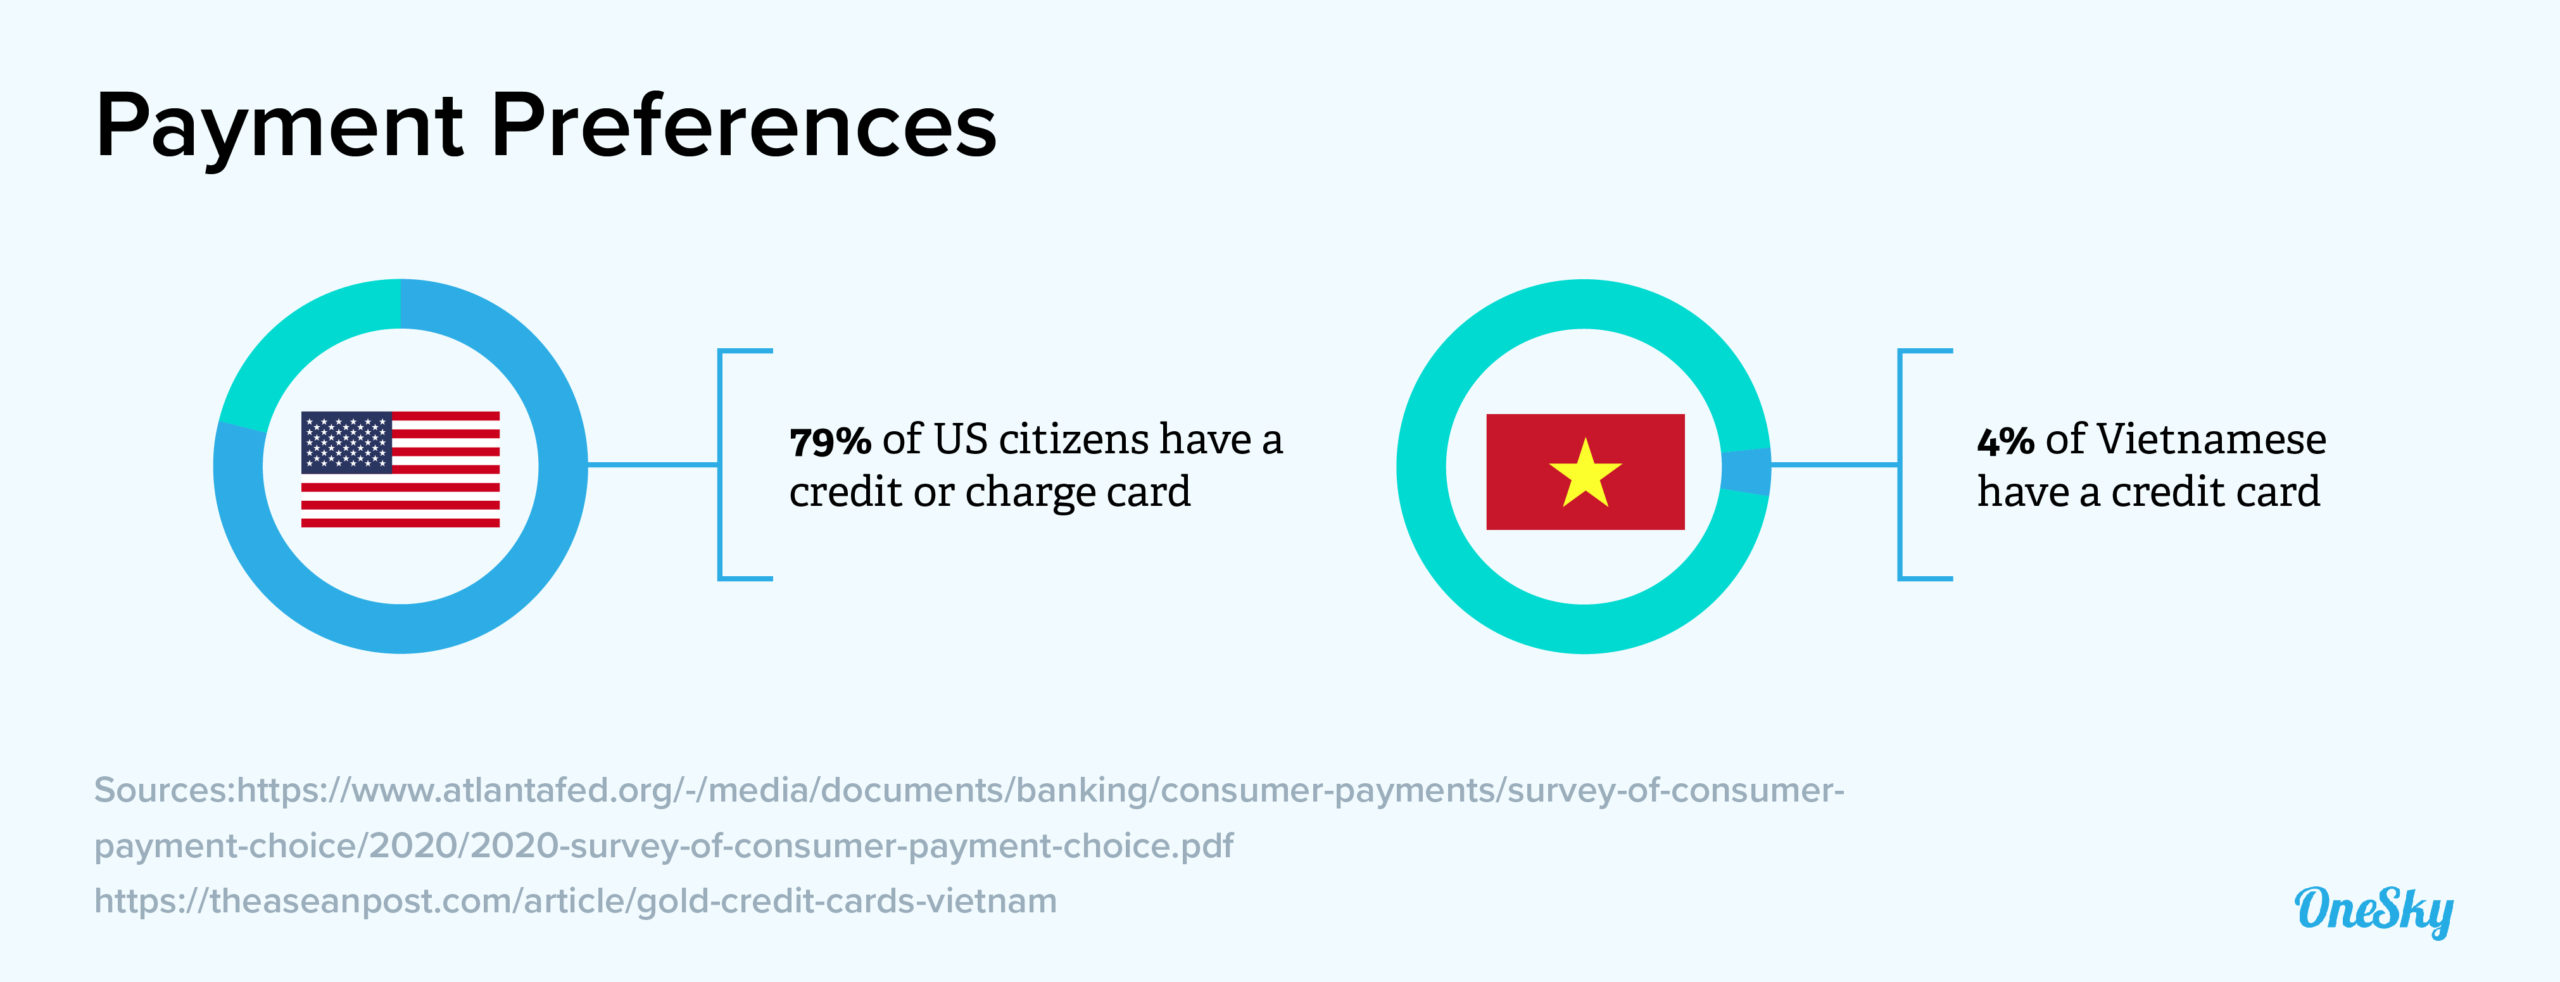 payment preferences